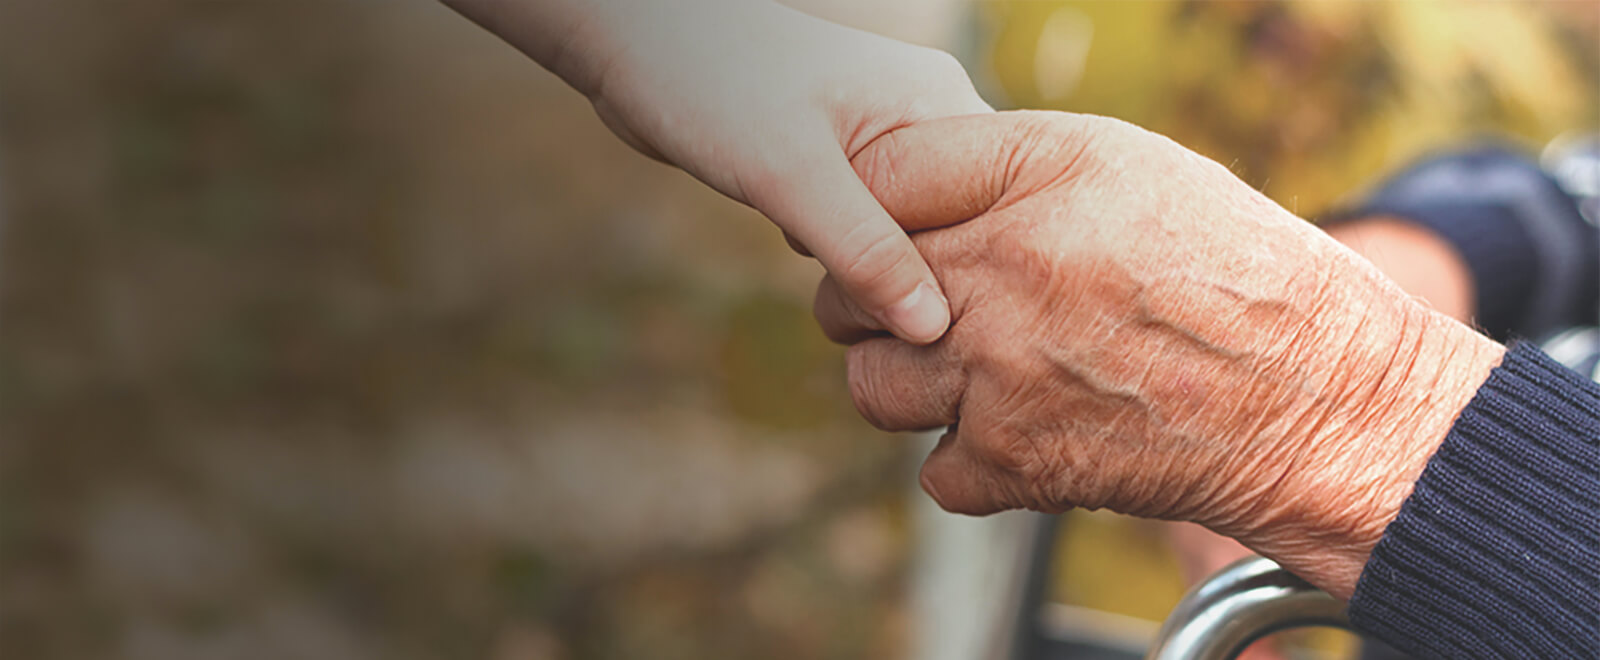 Young person hand reaching down to hold the hand of an elderly person